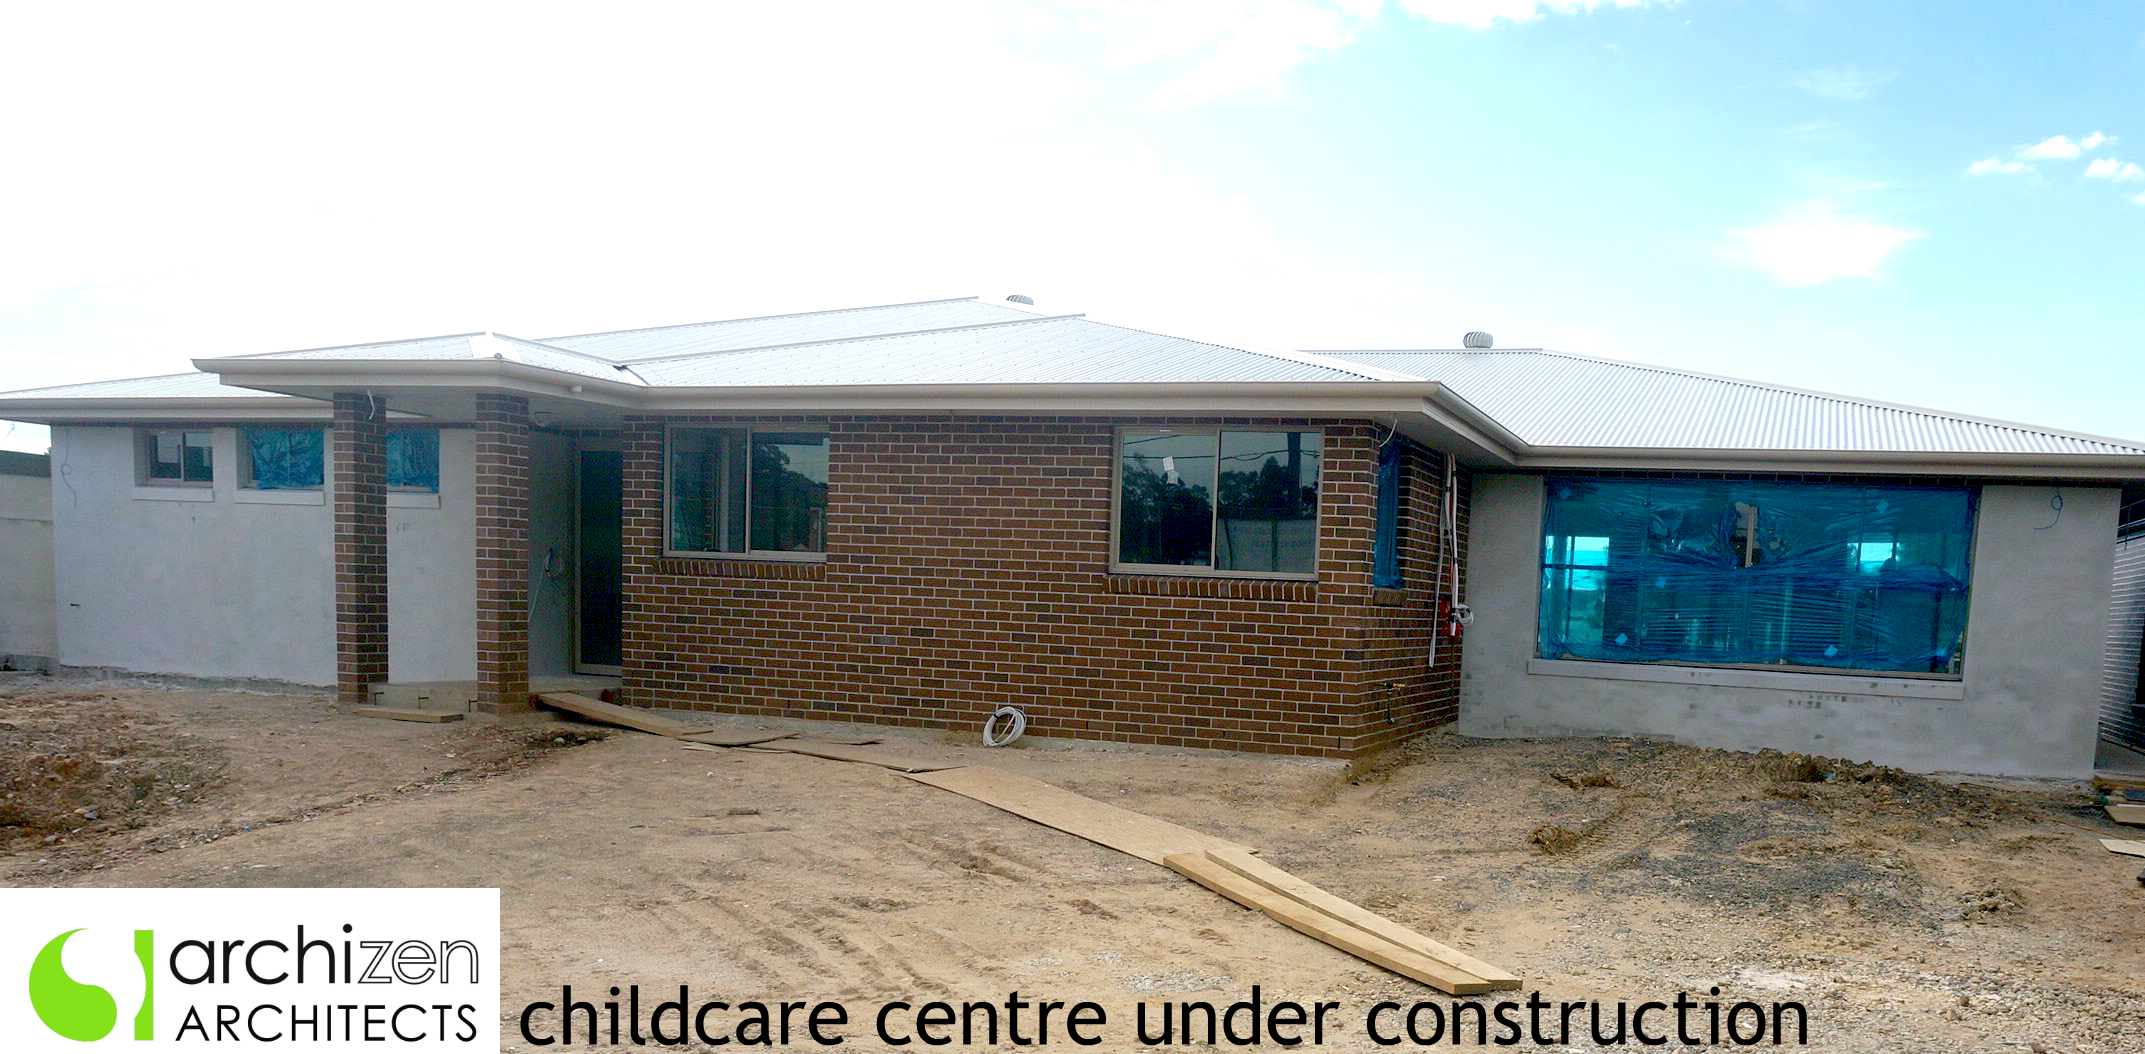 Sydney Archizen Architects childcare centre kindergarten OSHC Design Liverpool Council Long Day Care Centre Under Construction